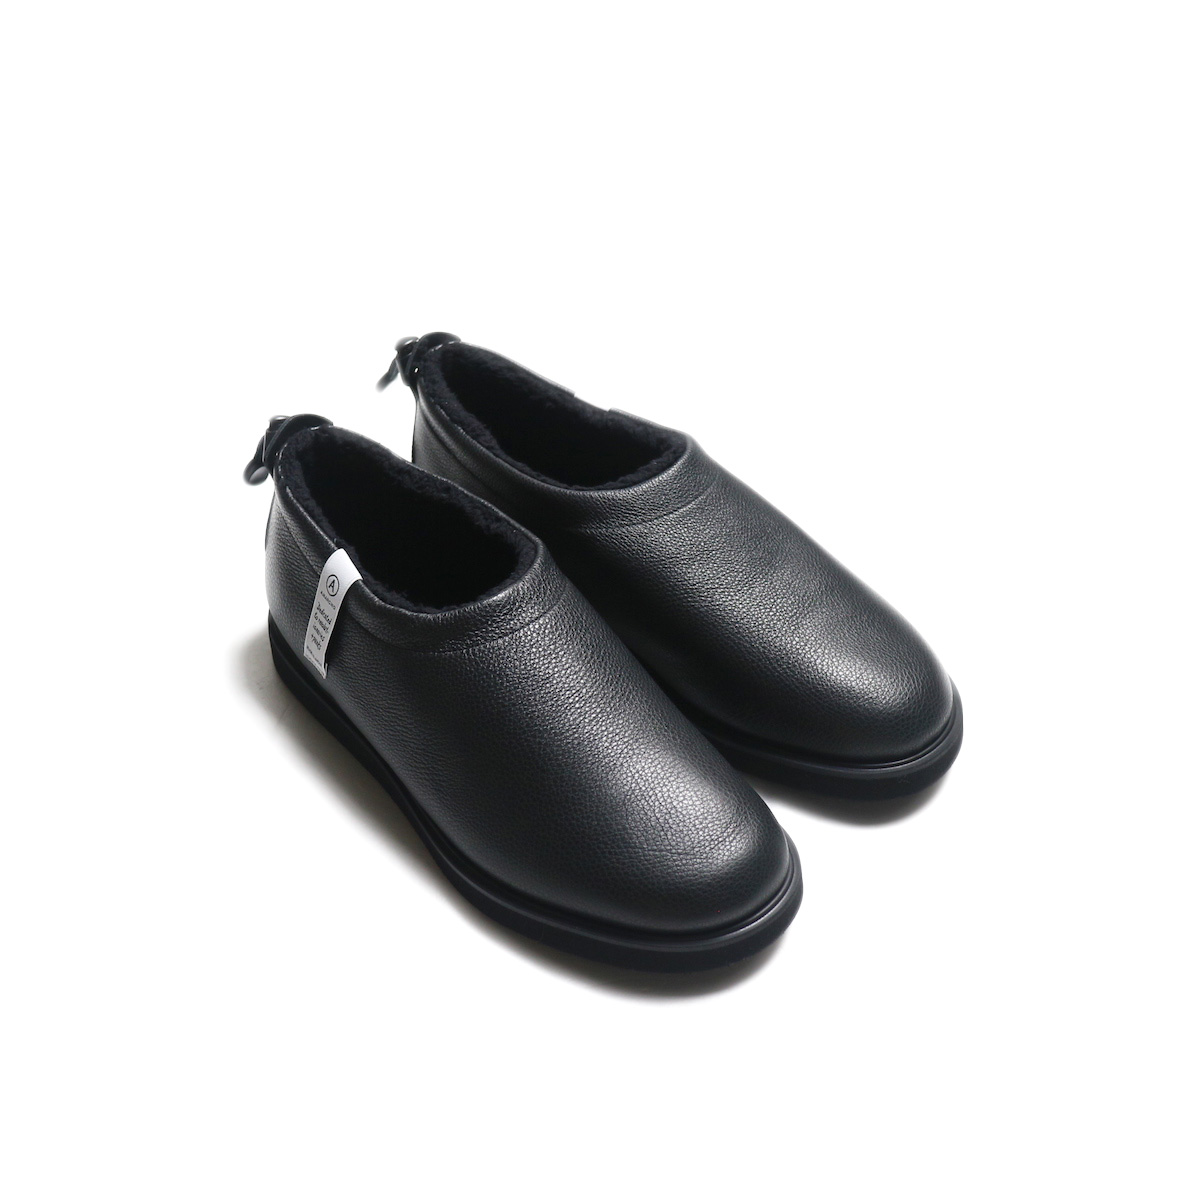 foot the coacher / FT-MOC (Black)